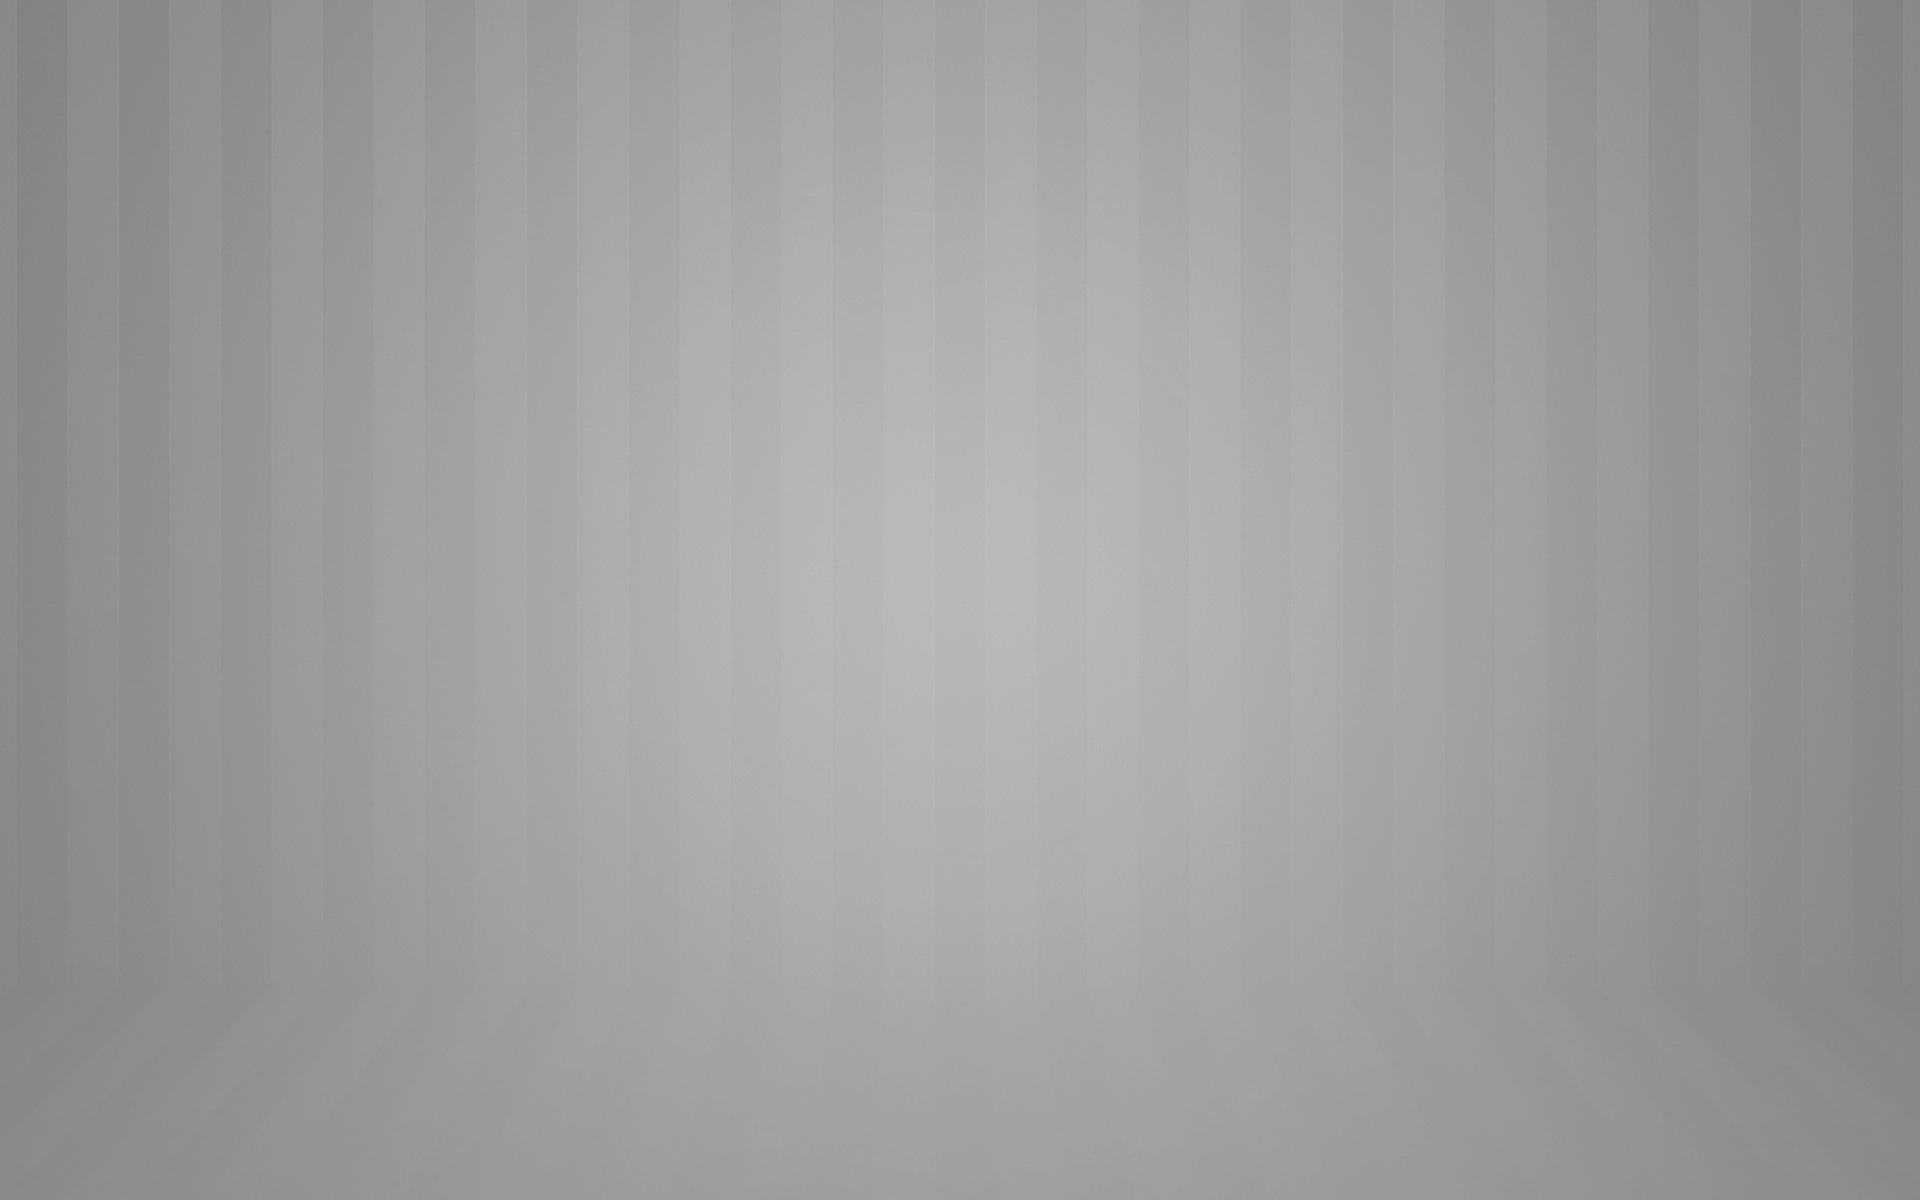 stripes_grey_wallpaper_by_gominhos-d5j4oa4-grey-HD-free-wallpapers-backgrounds-images-